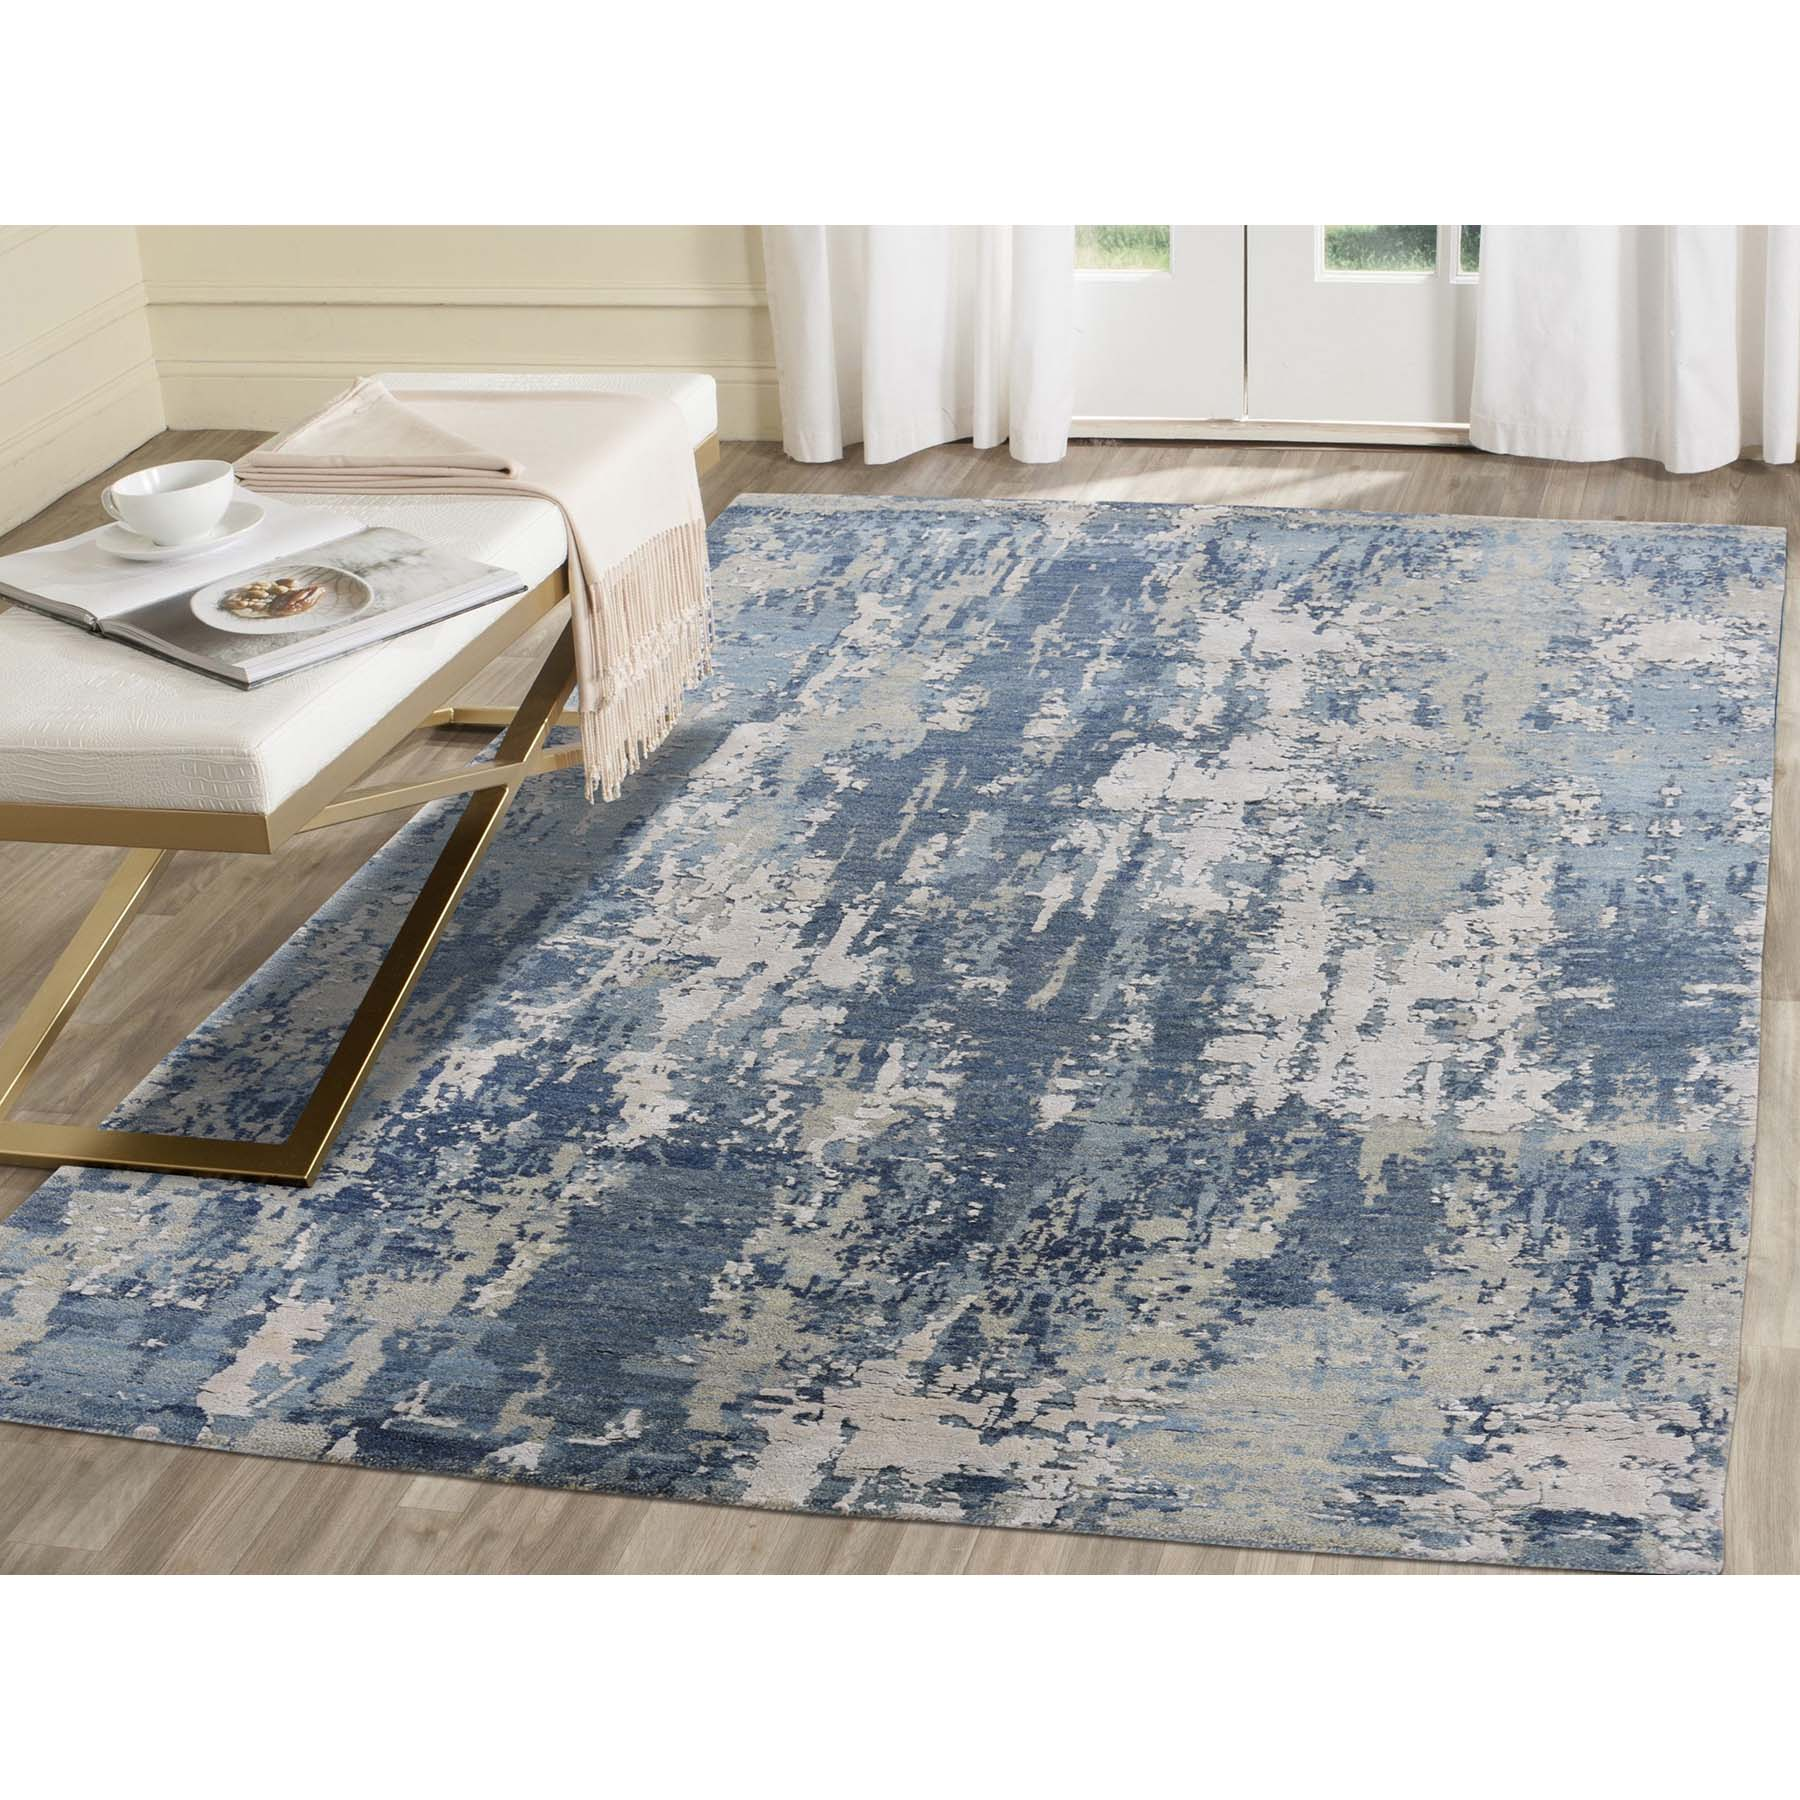 4 X6 1 Blue Gray Abstract Design Wool And Pure Silk Hand Woven Oriental Rug